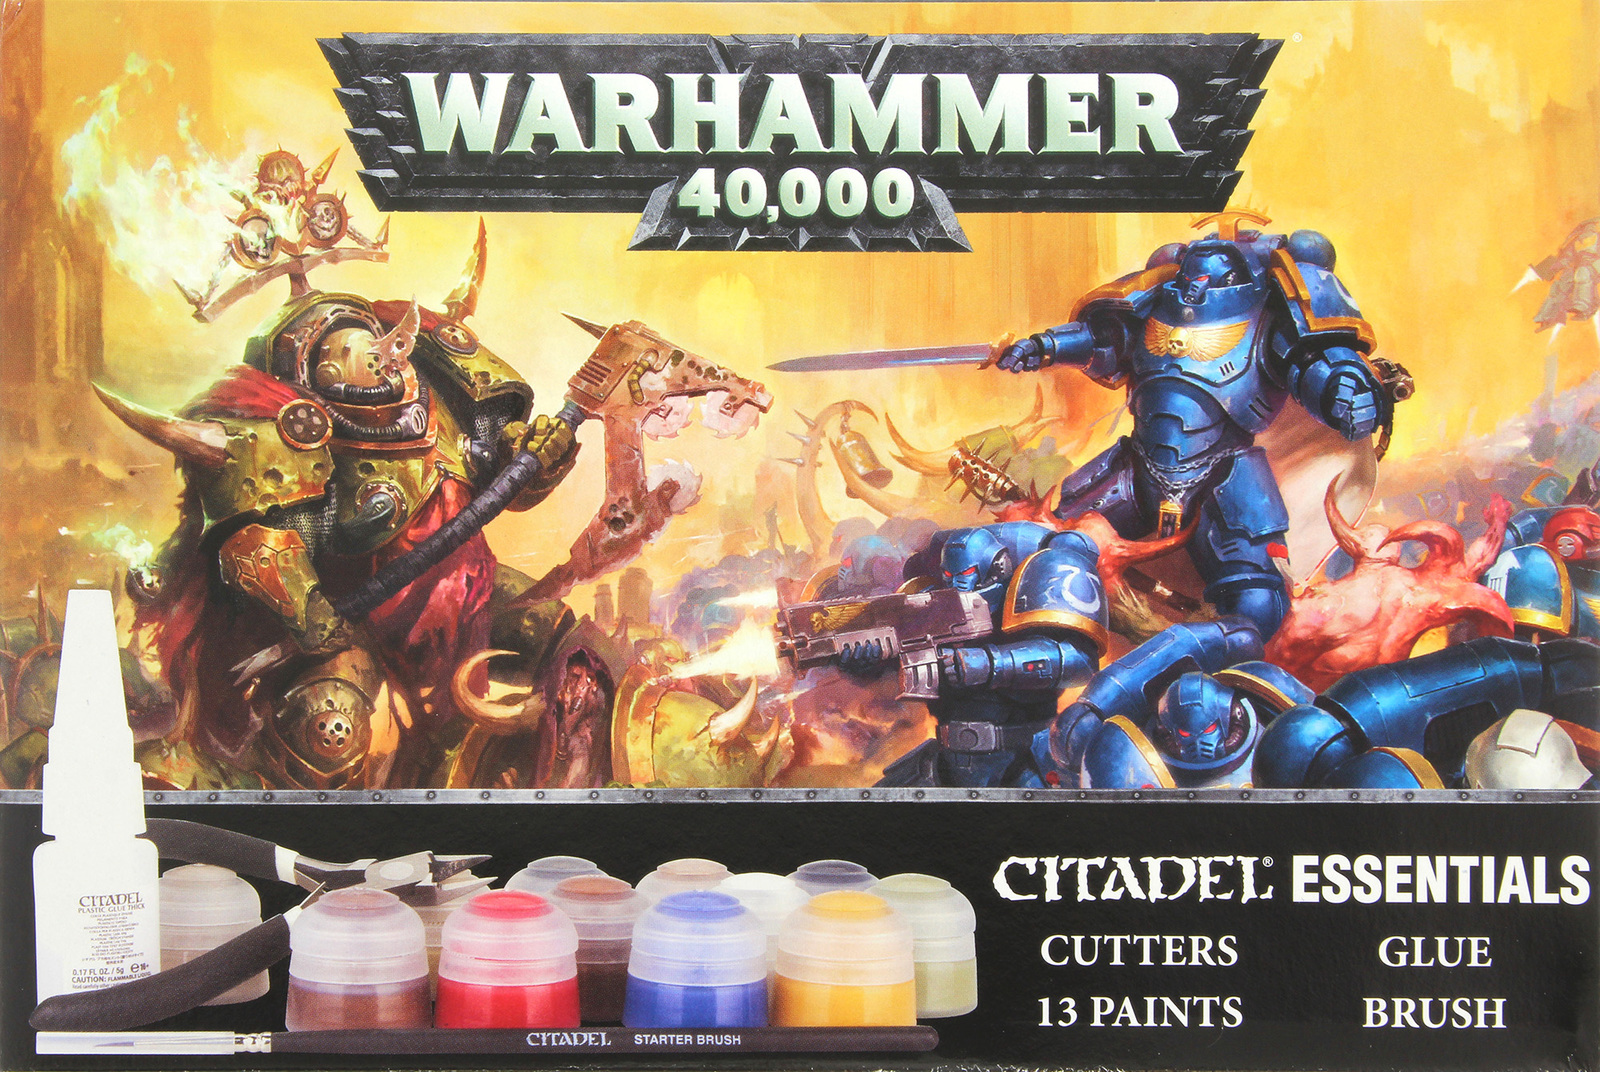 Warhammer 40,000 Essentials Set image